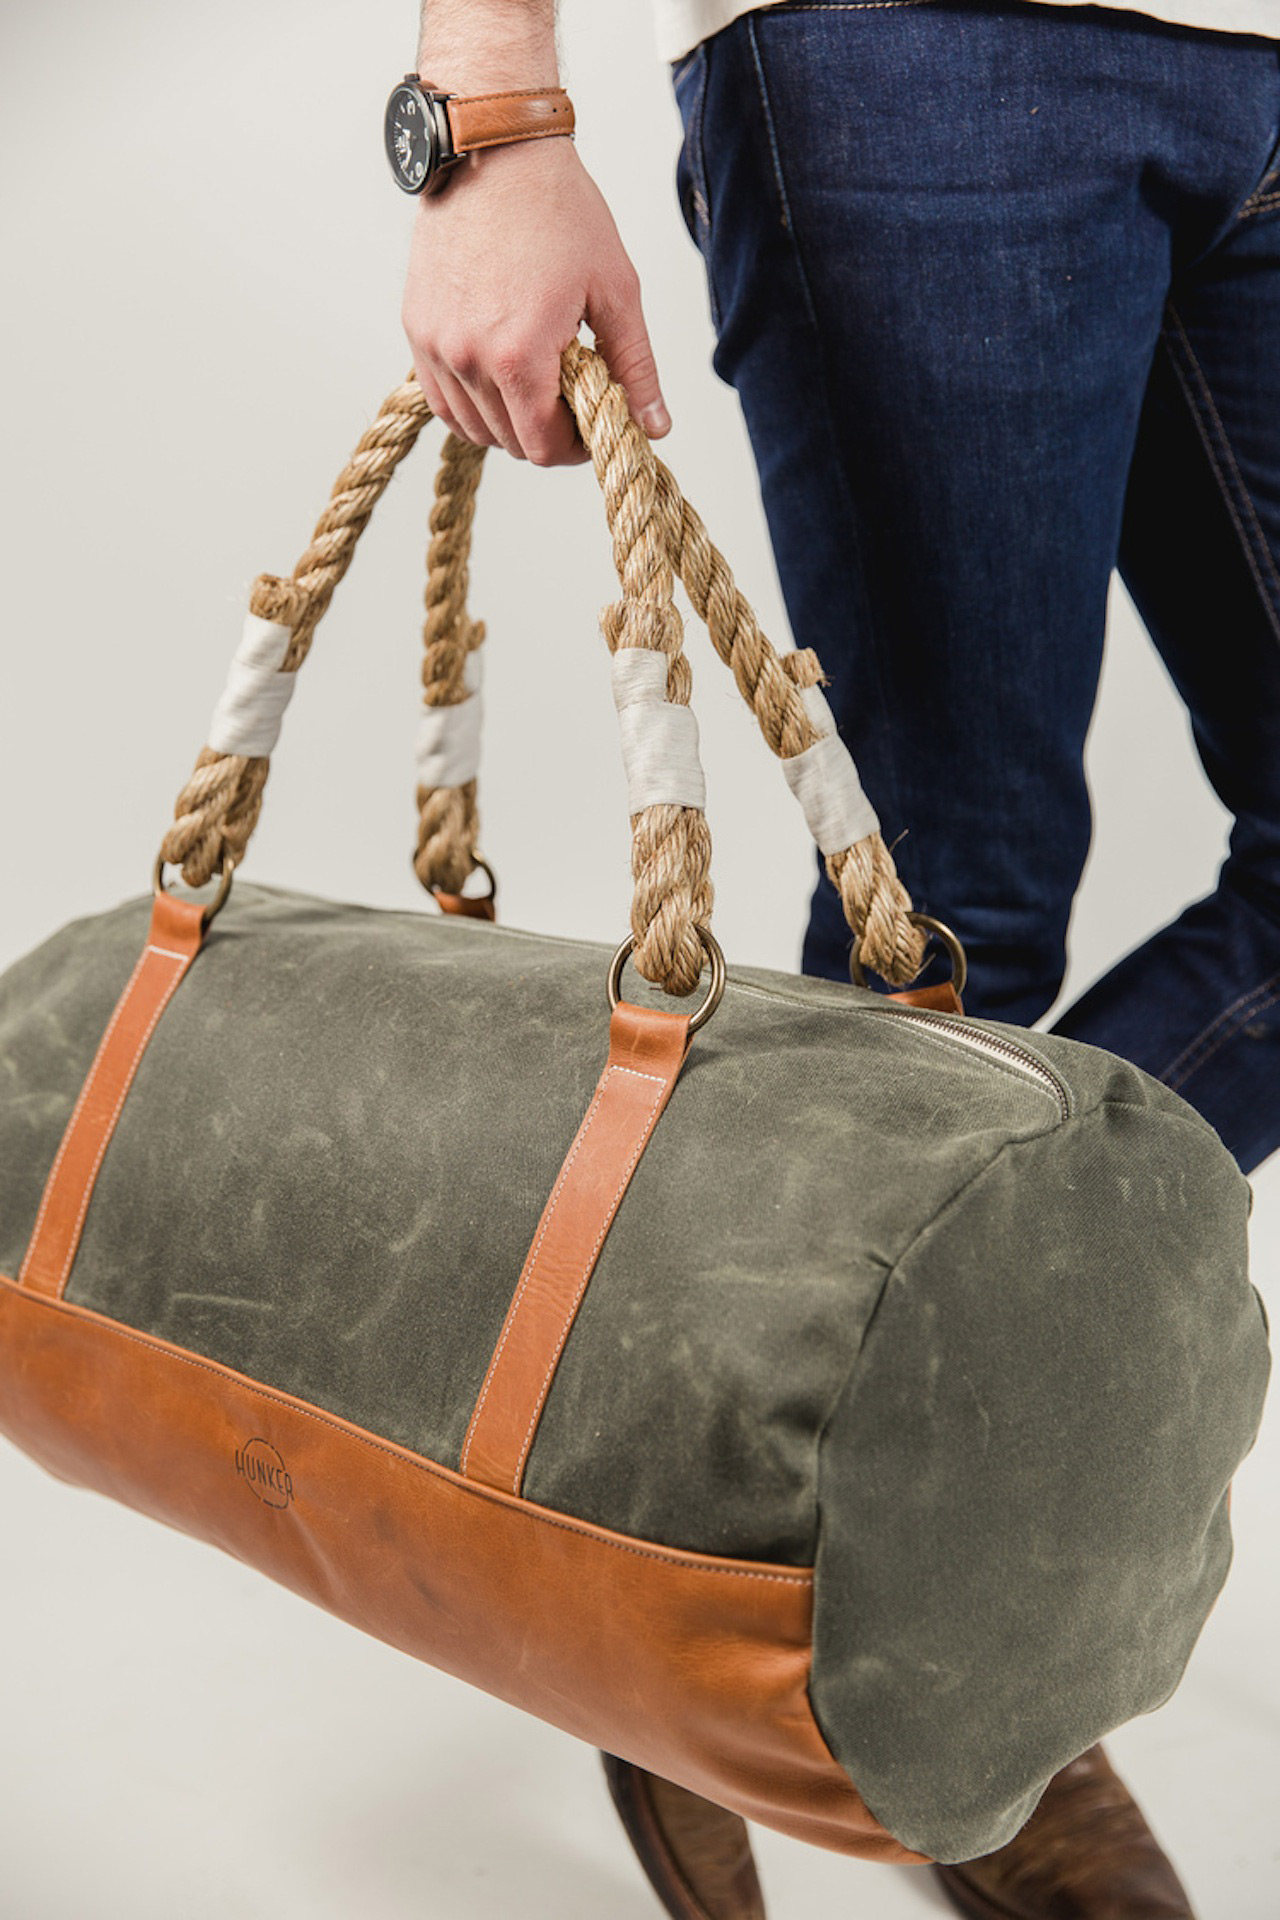 Hunker Bag Co Duffel No 1